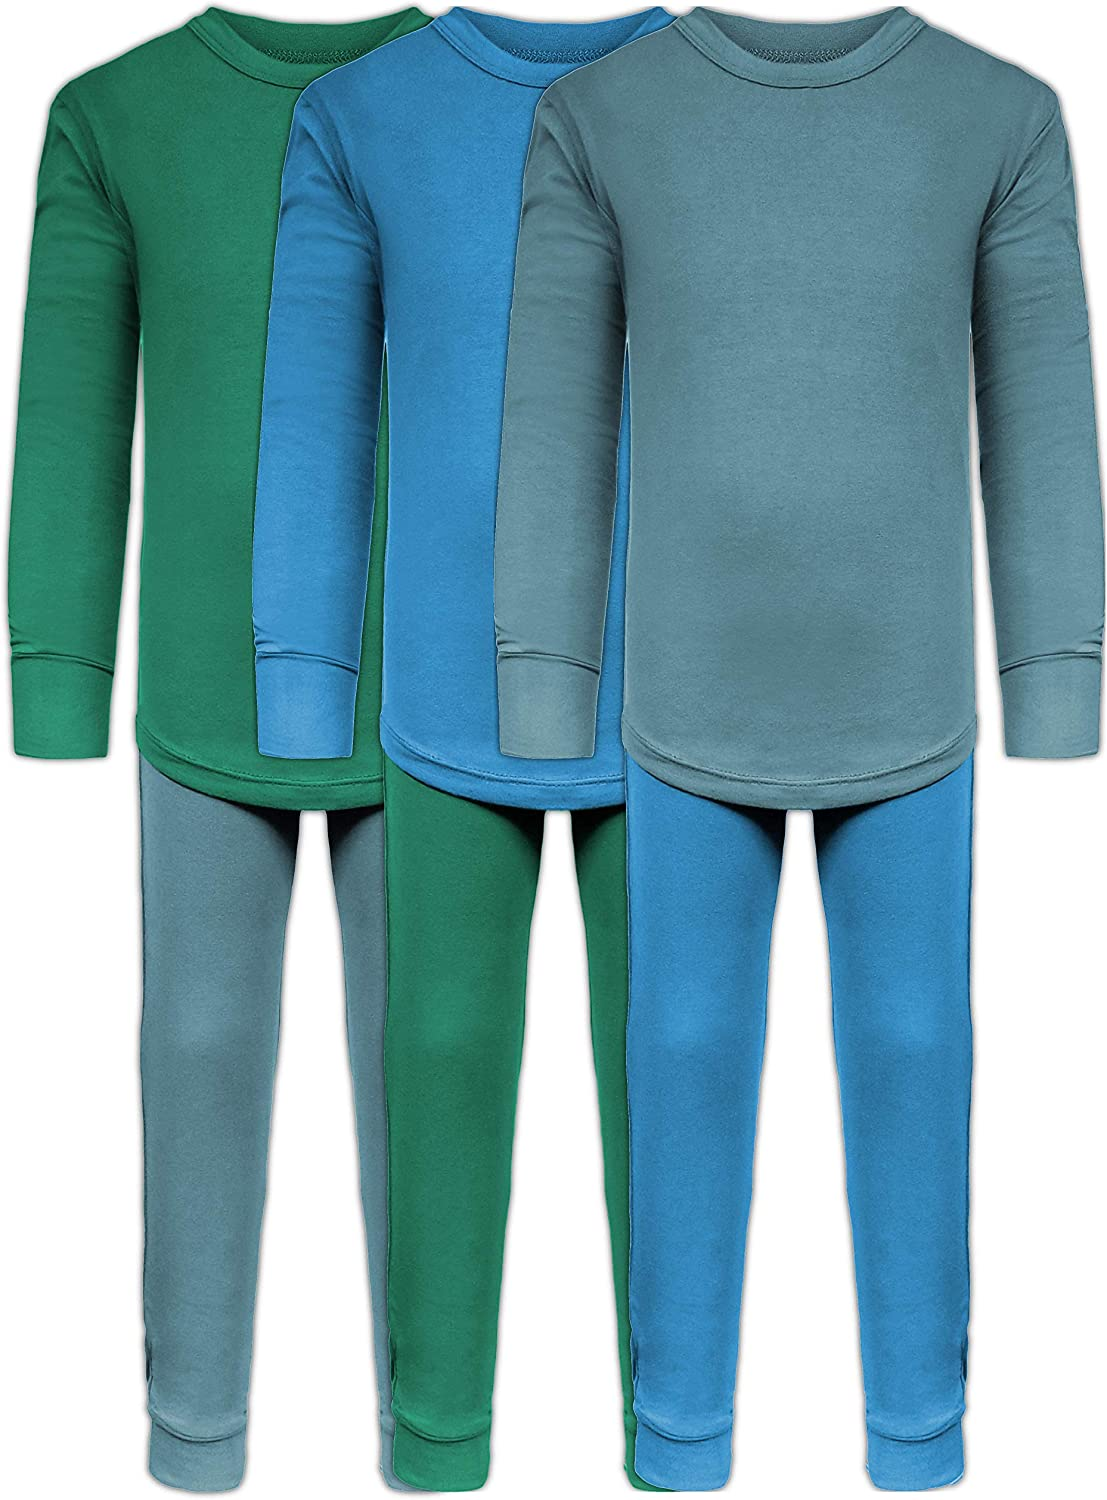 Only Boys Warm Long John Thermal Underwear Top and Pant Set